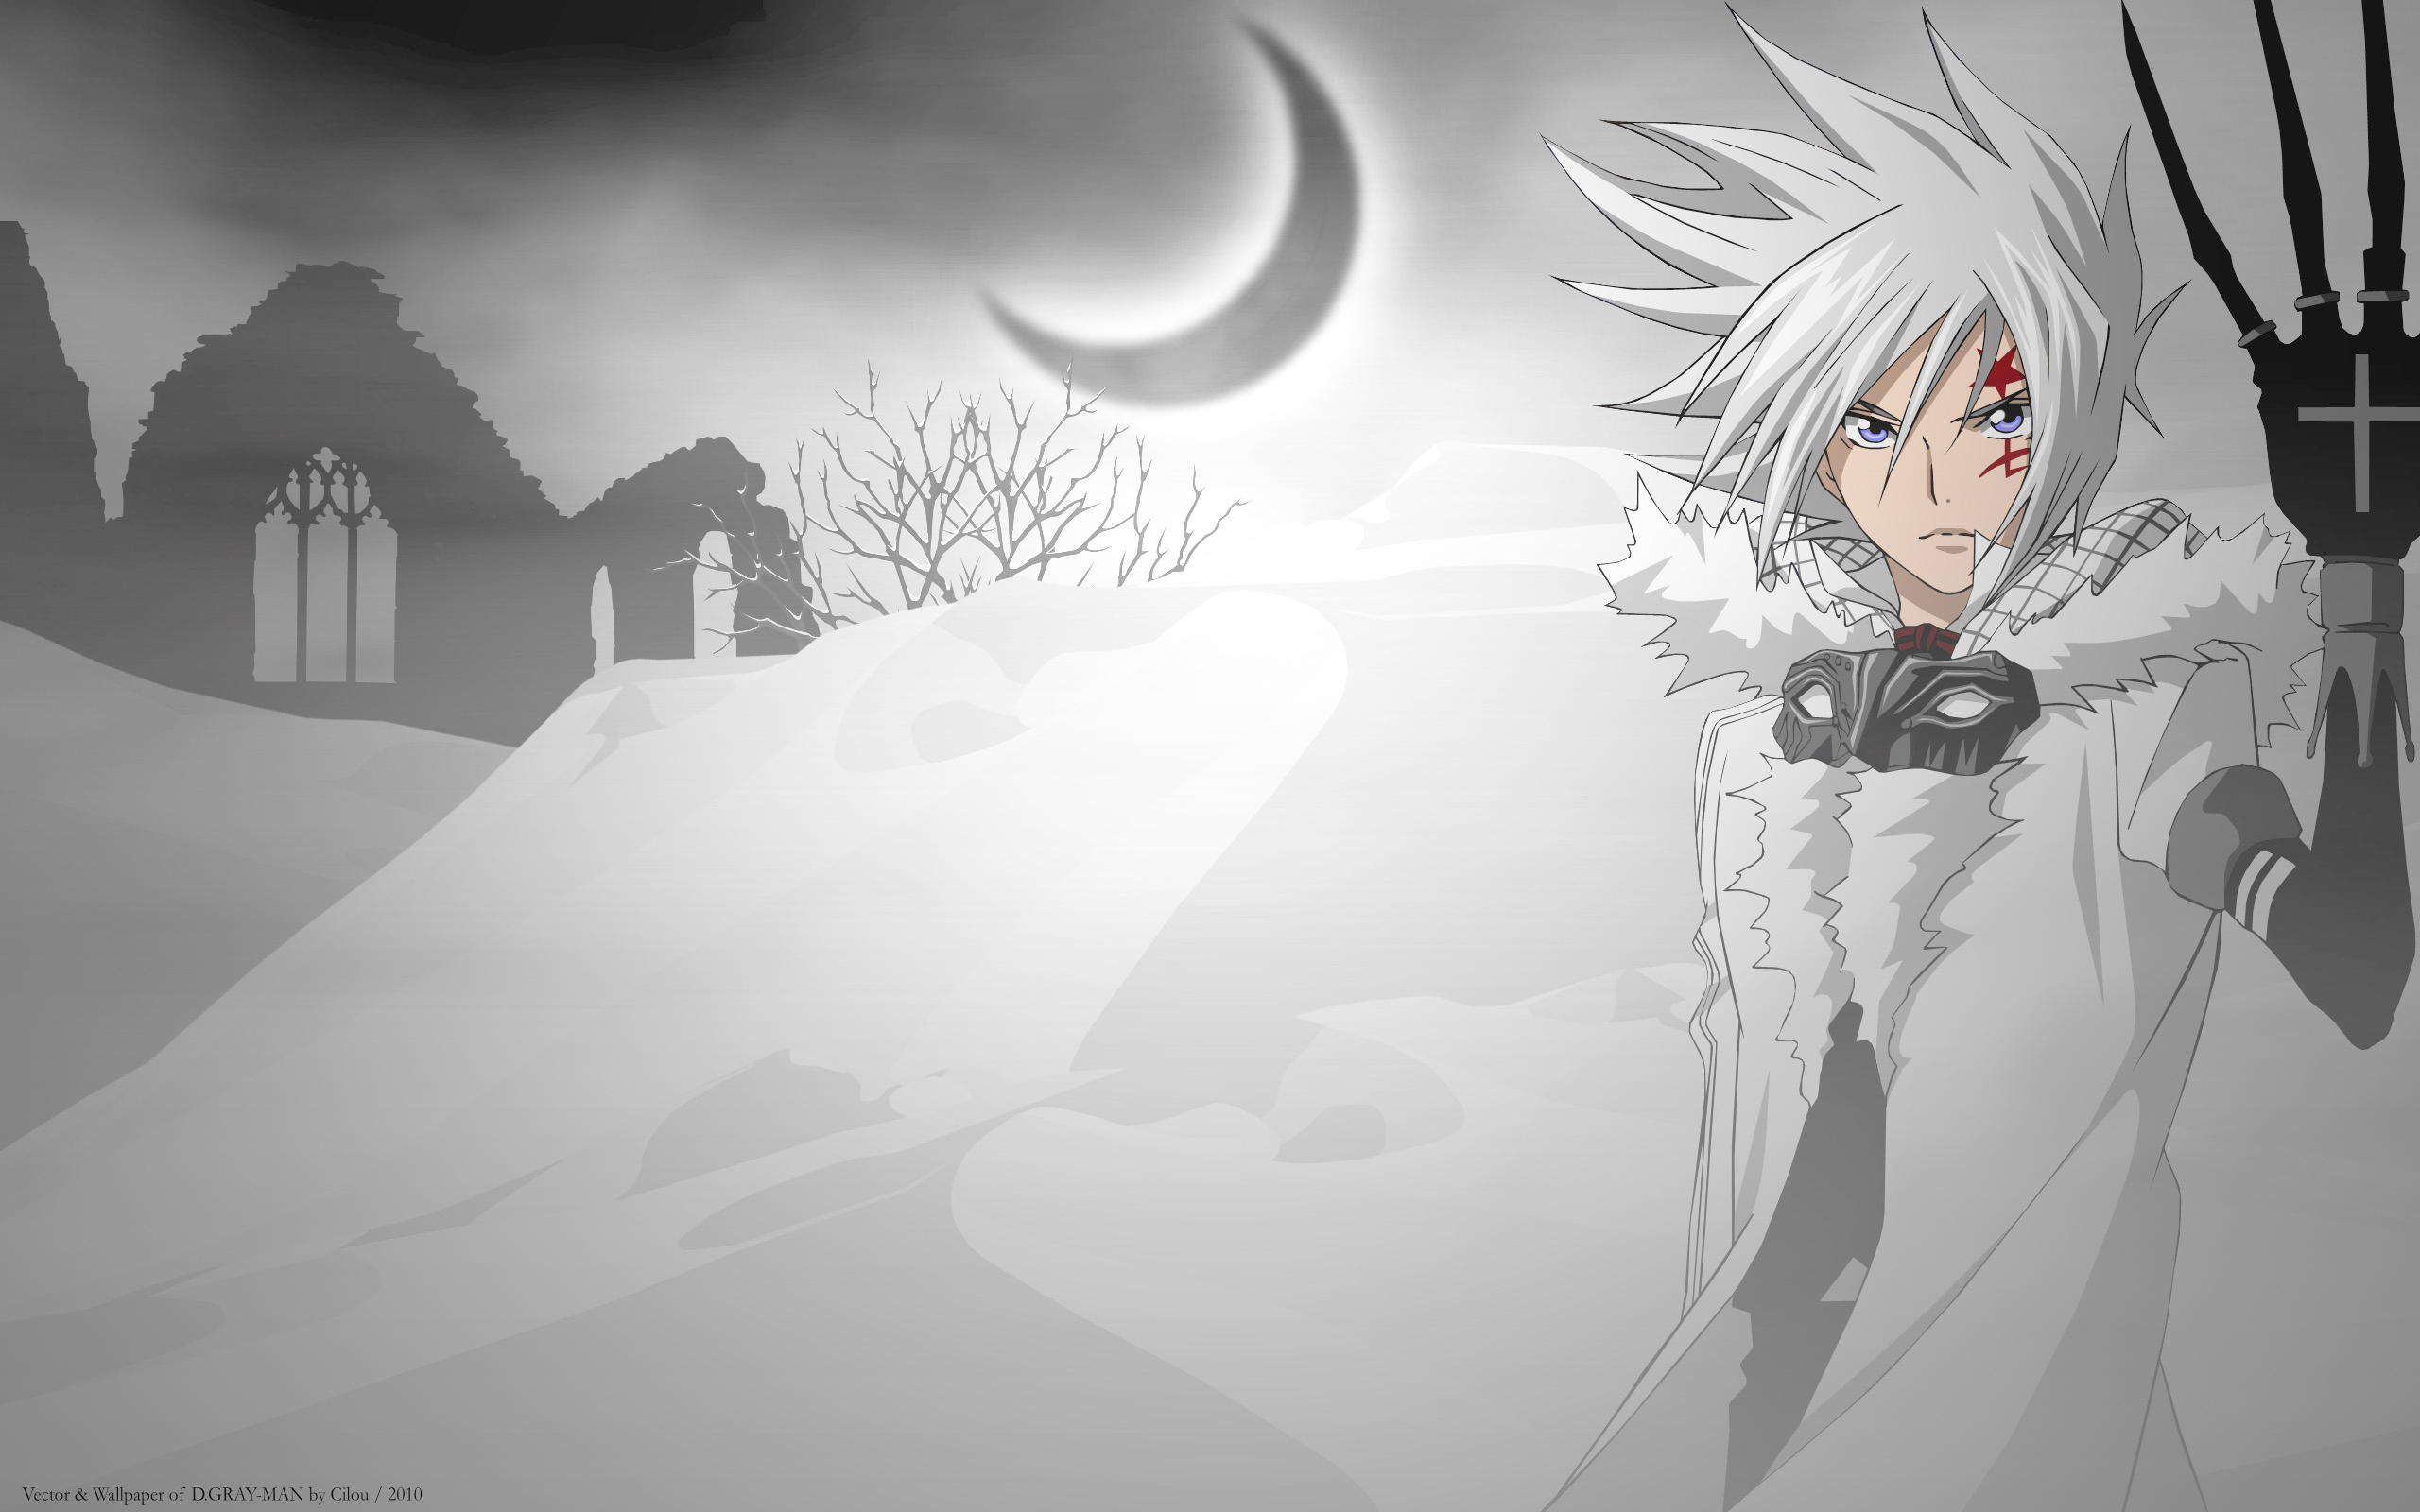 D gray man d gray man wallpaper 25478810 fanpop - D gray man images ...